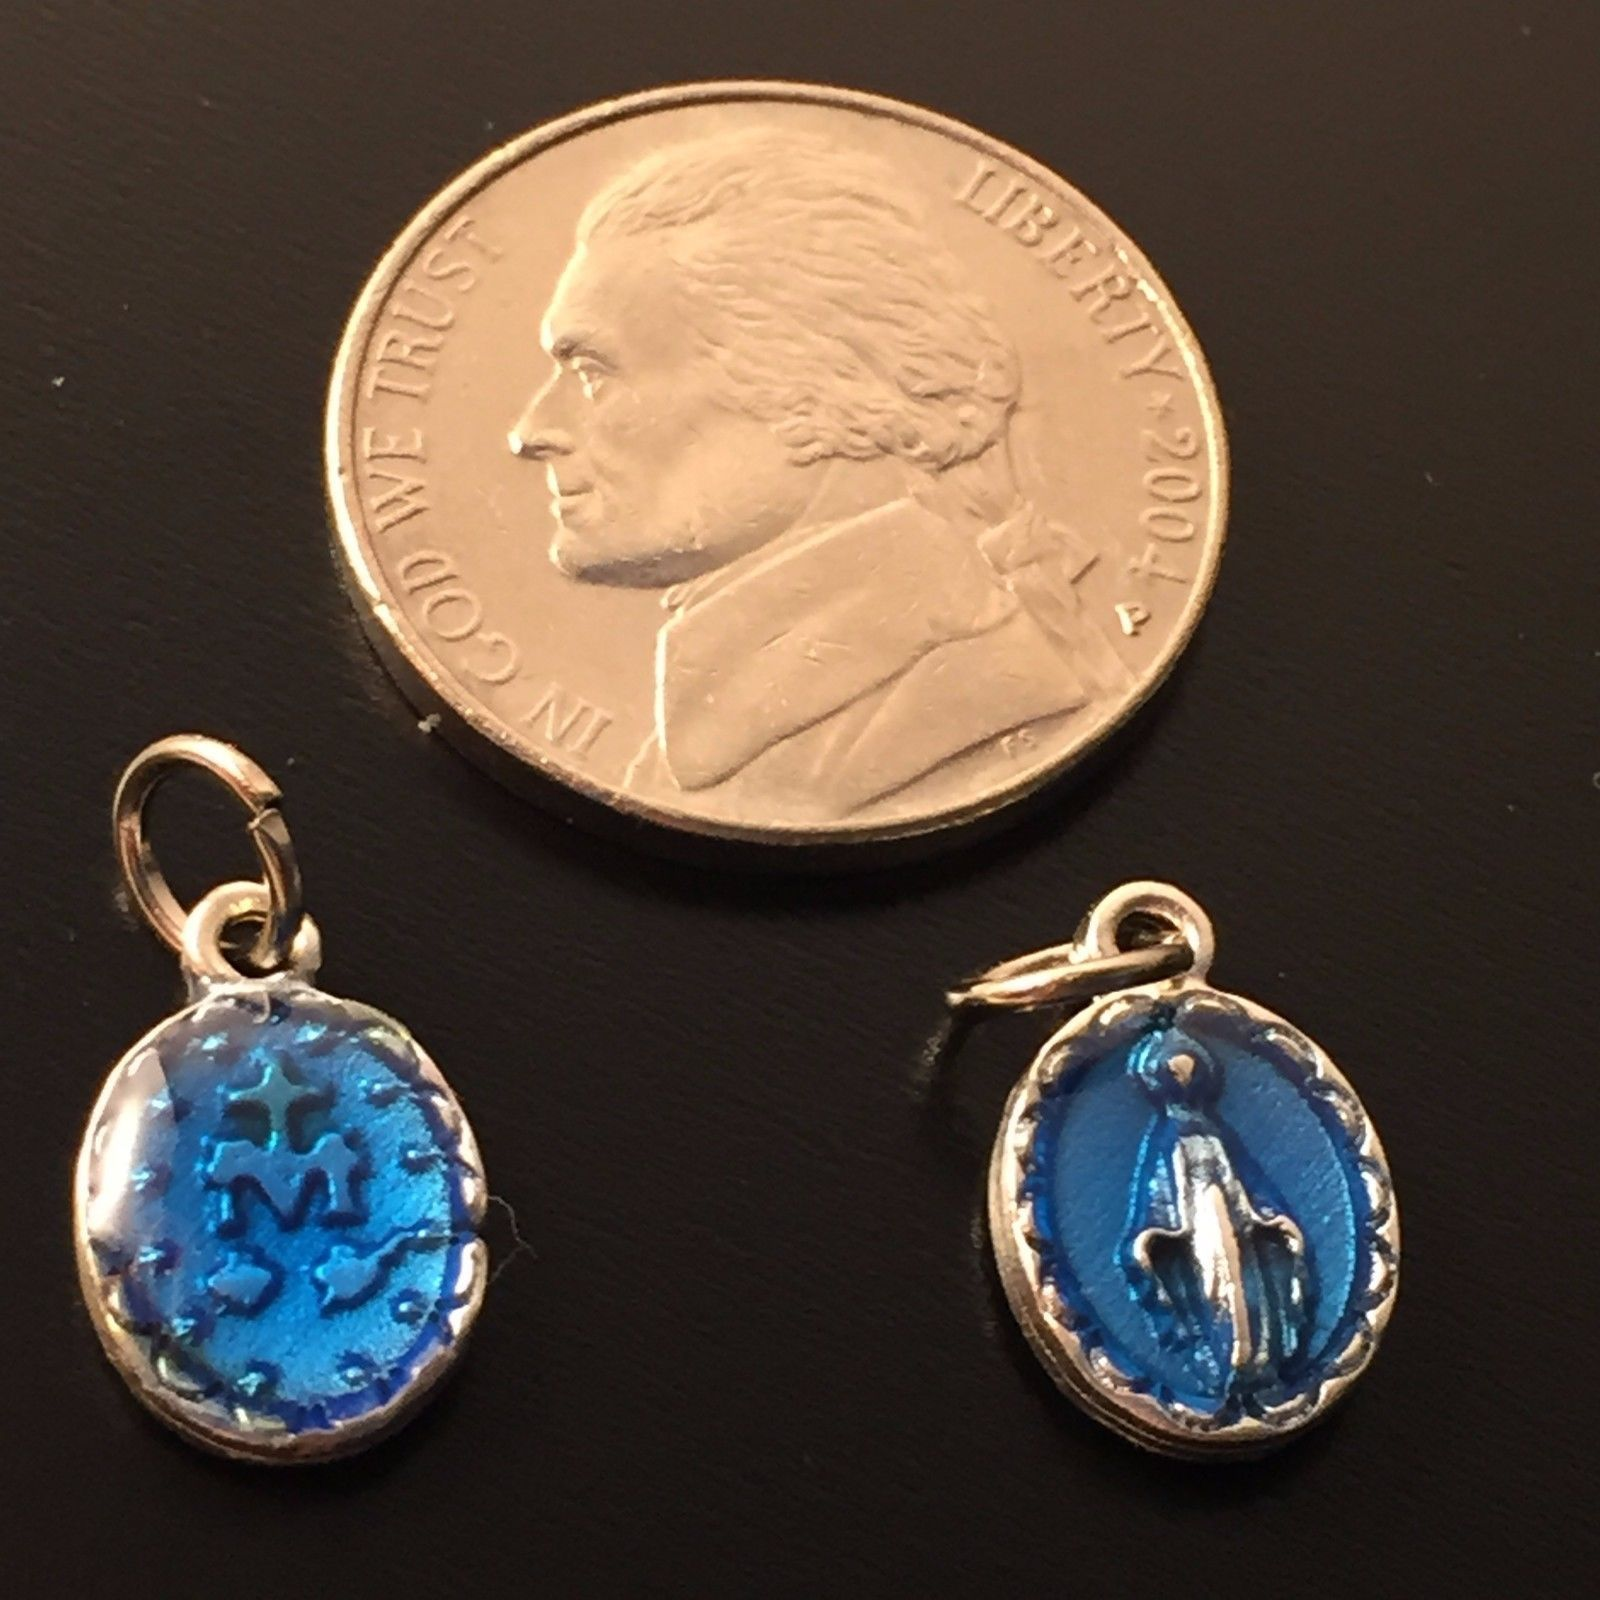 370c1c6d2 Beautiful Our B.V. Mary Miraculous Medals. 2x Nice and detailed medals -  Tiny medals to hang to your favorite rosary.